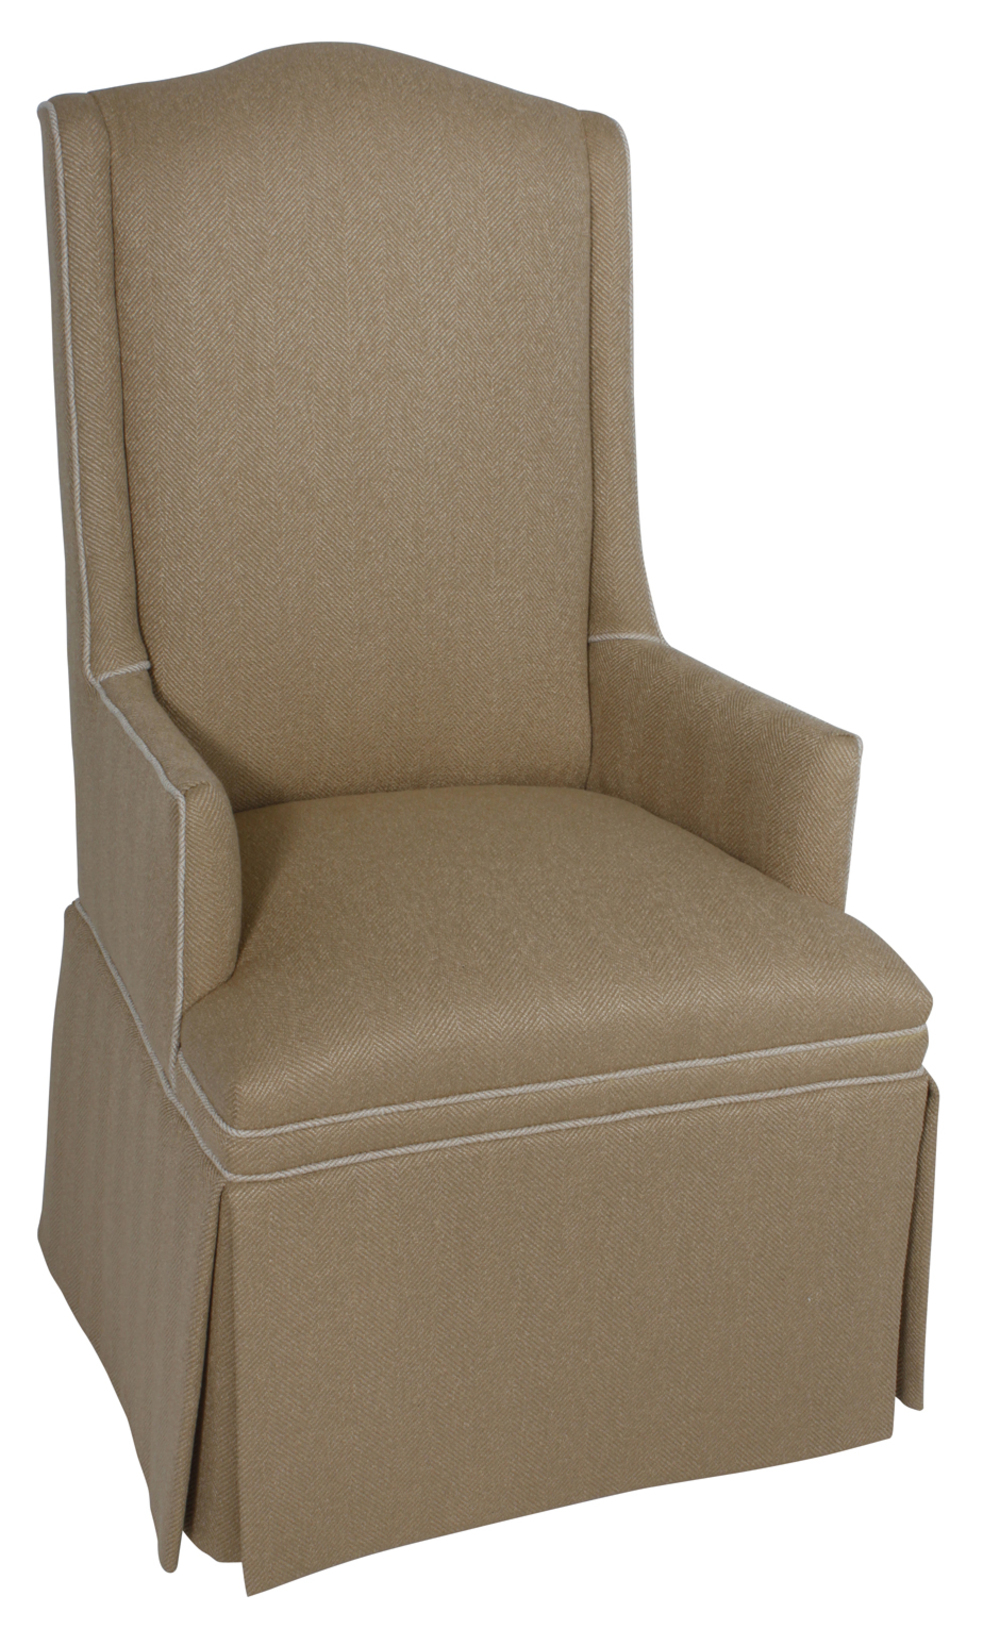 Cox Manufacturing - Host Chair